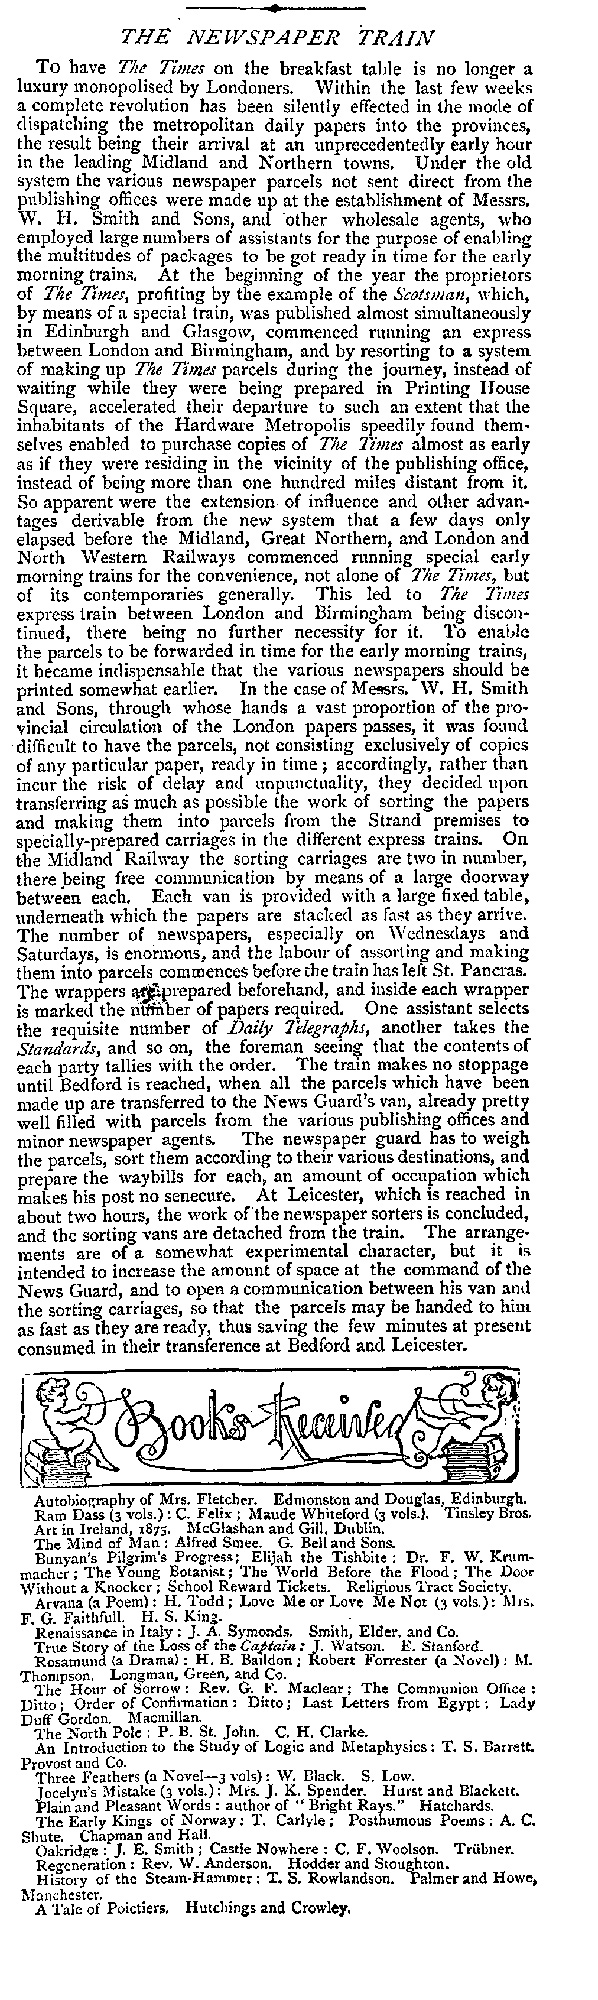 Newspaper article describing the delivery of newspapers around the country by train